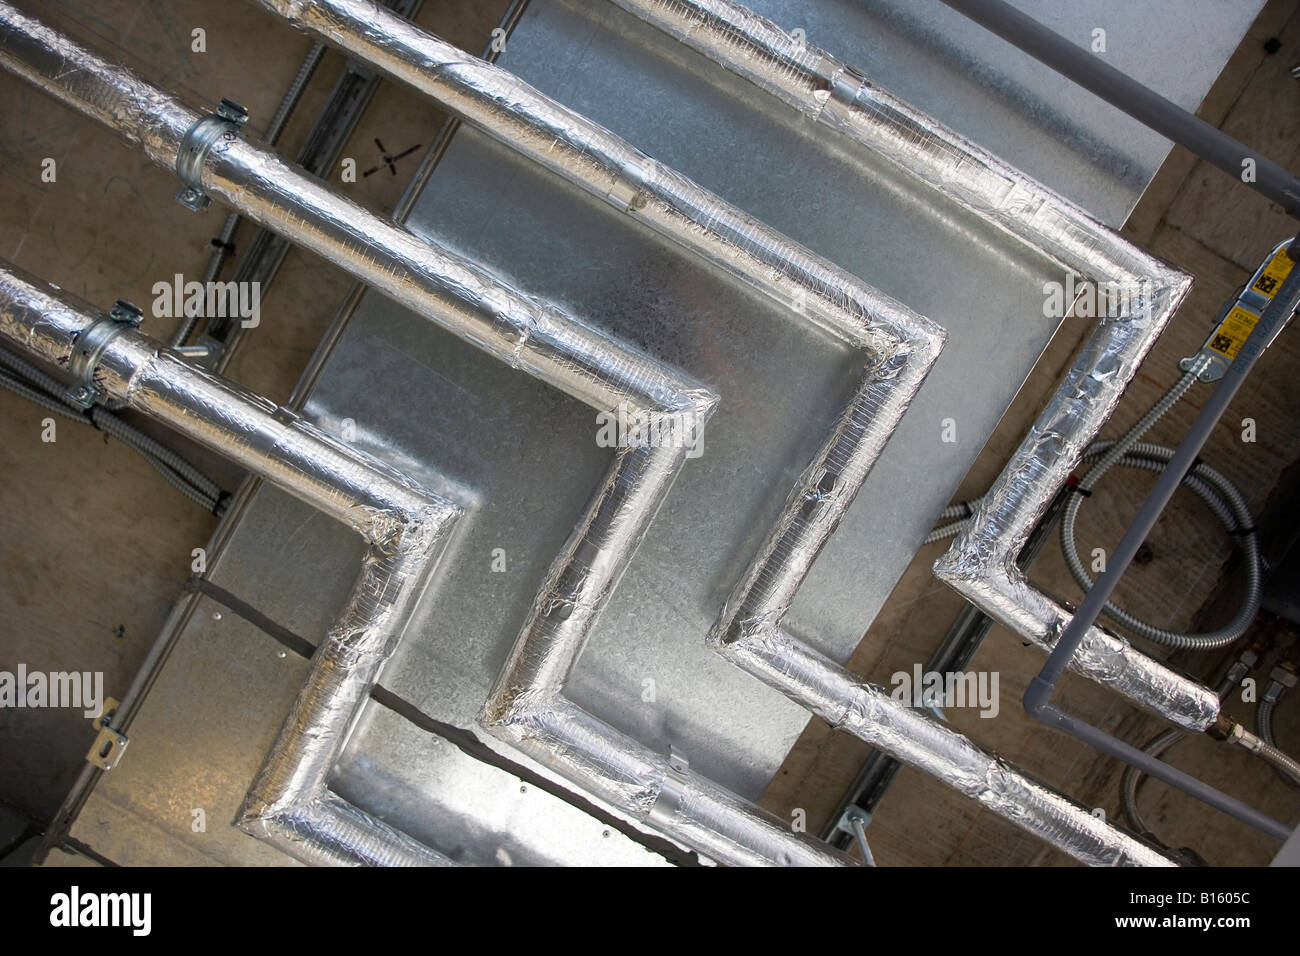 air conditioning pipes in a newly constructed office building stock